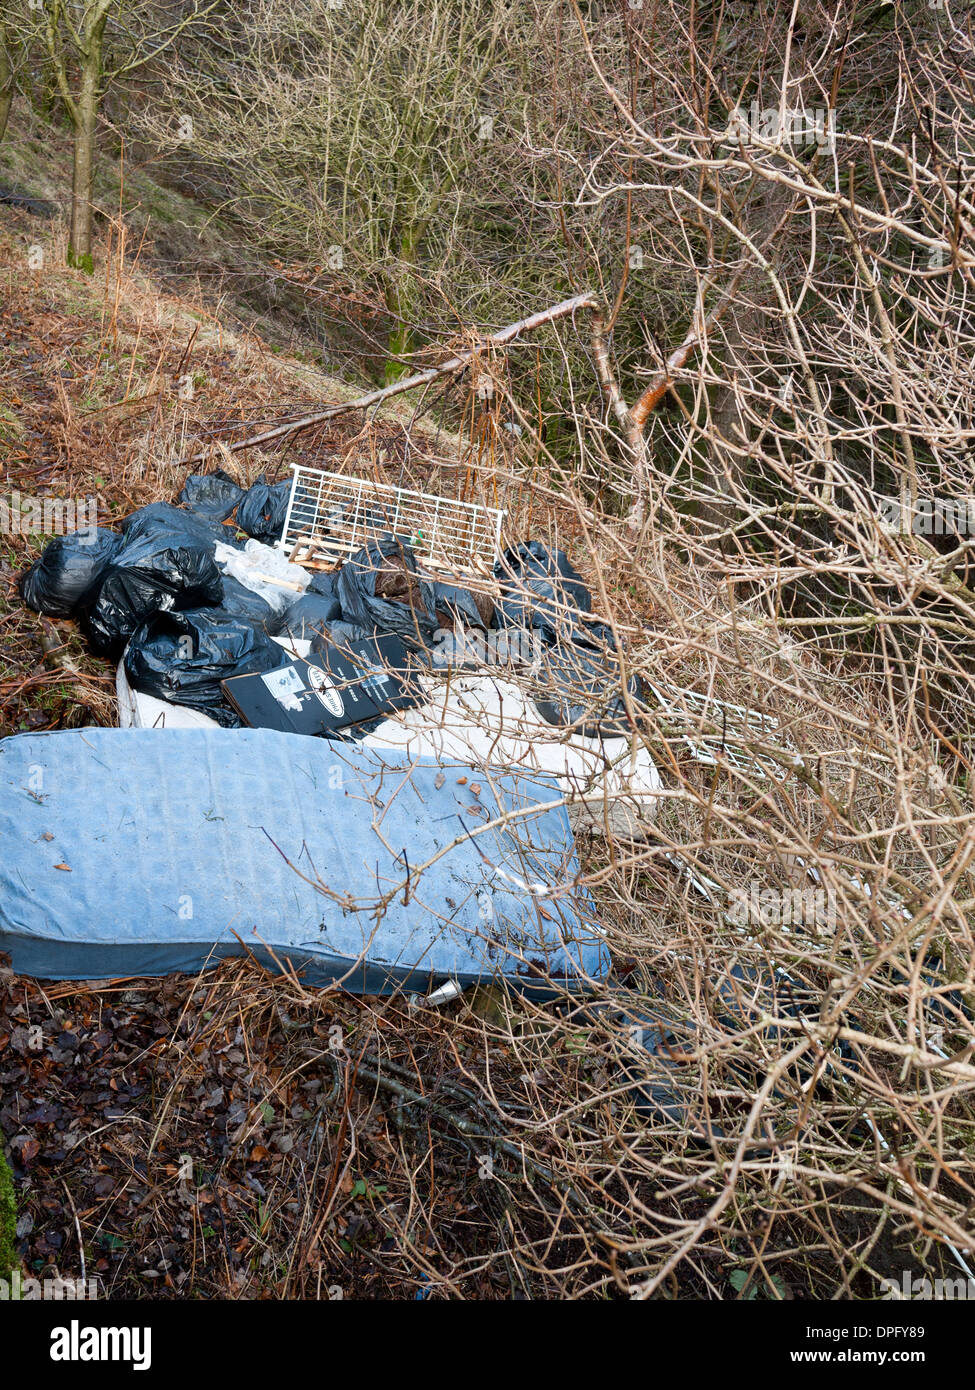 Rubbish dumped in countryside UK. - Stock Image